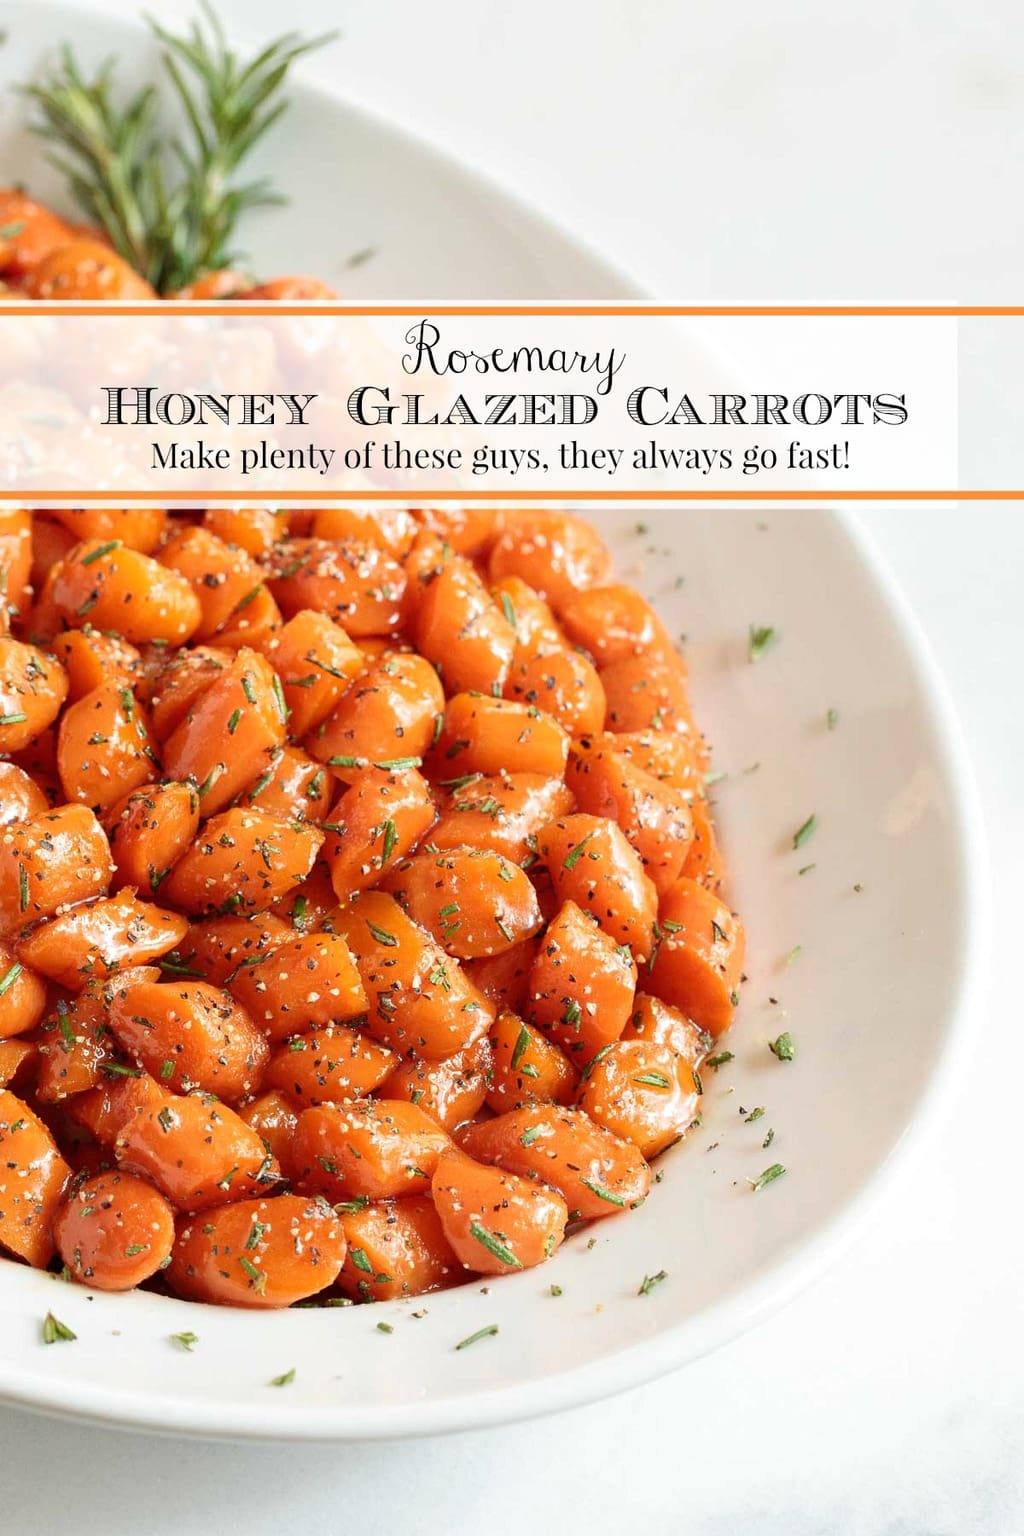 Rosemary Honey Glazed Carrots